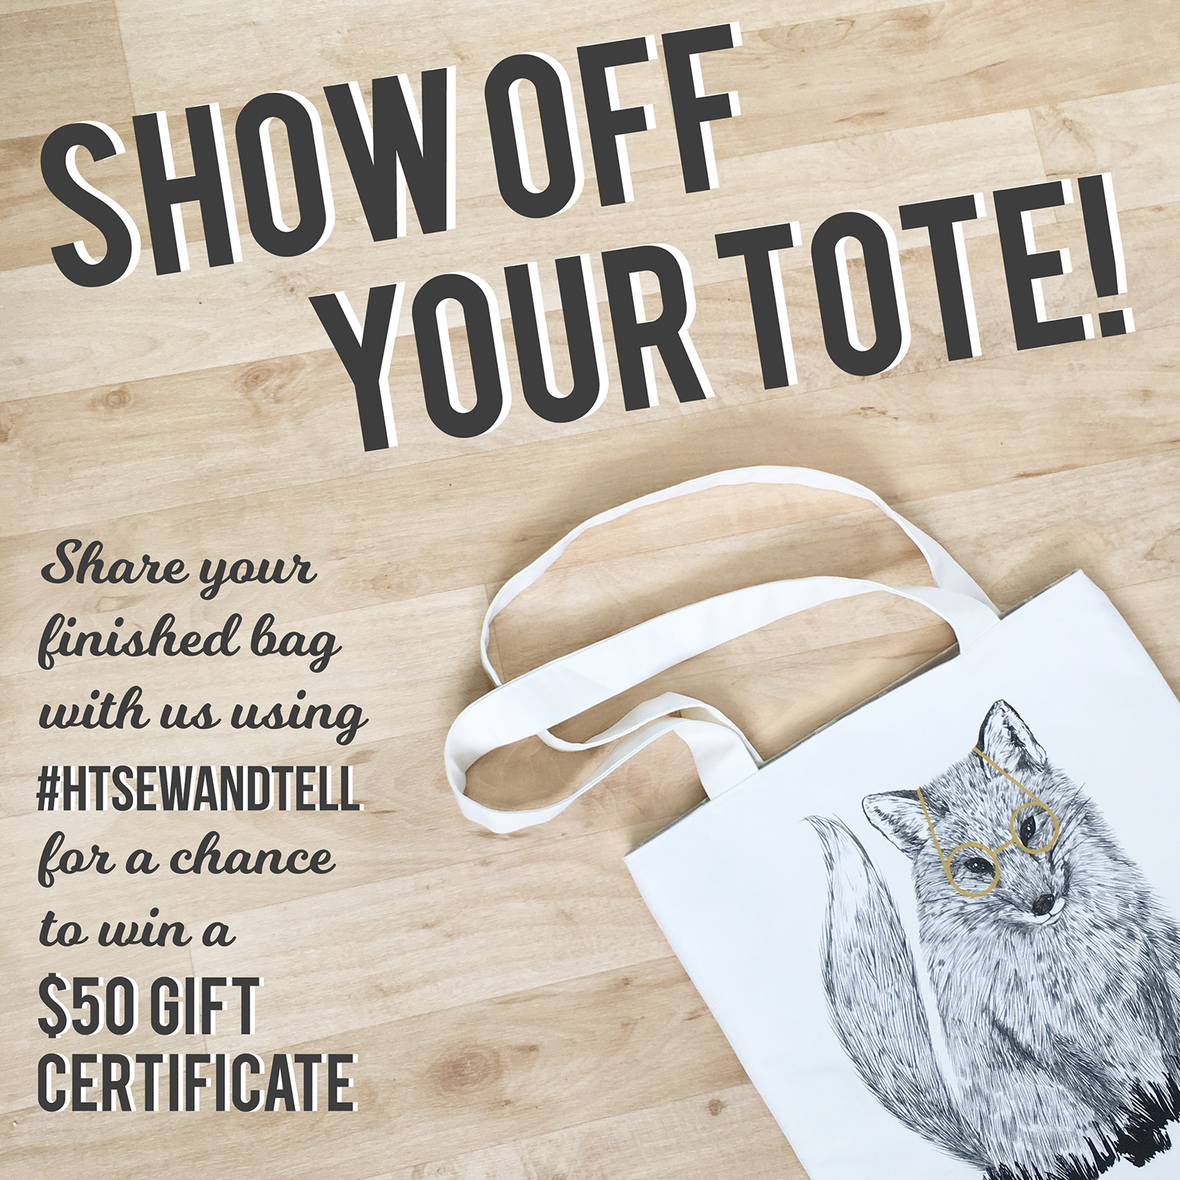 Show Off your Tote Contest Image